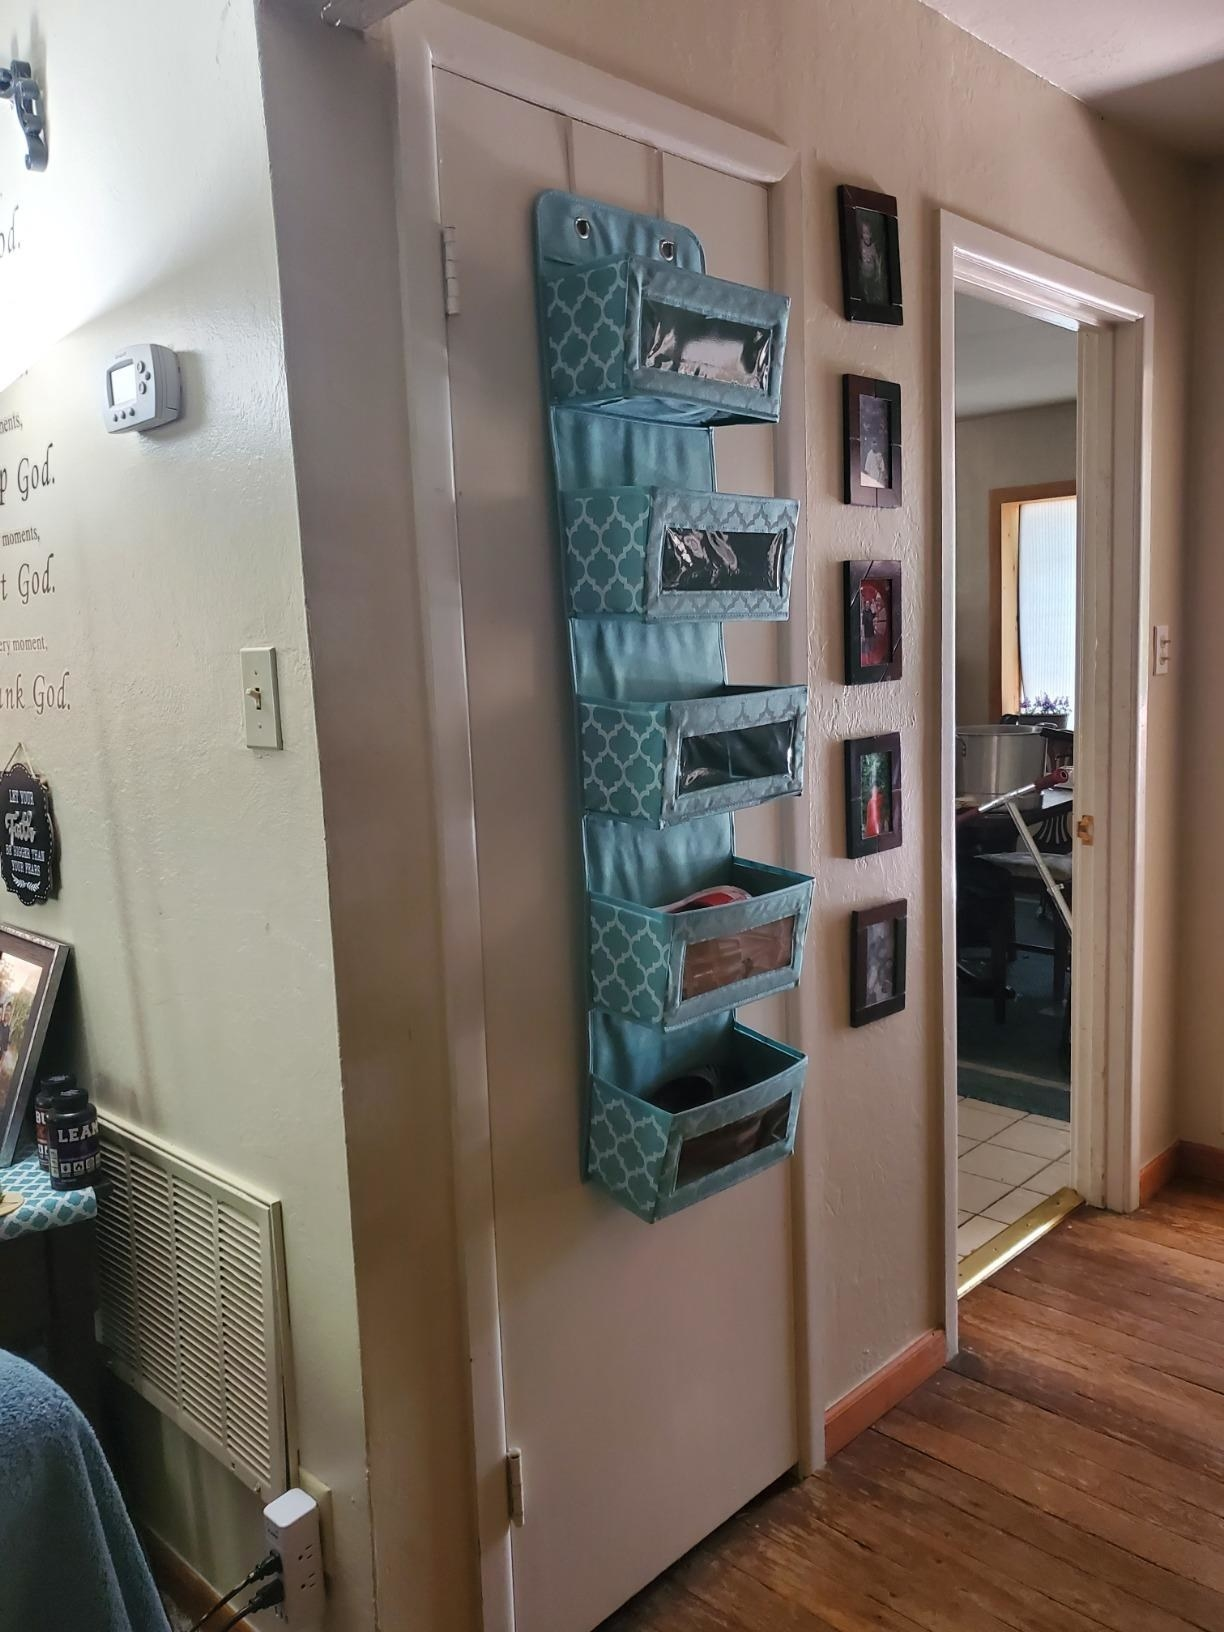 The blue Over The Door Hanging Organizer with 5 Large Clear Window Pockets hanging from a customer's closet door